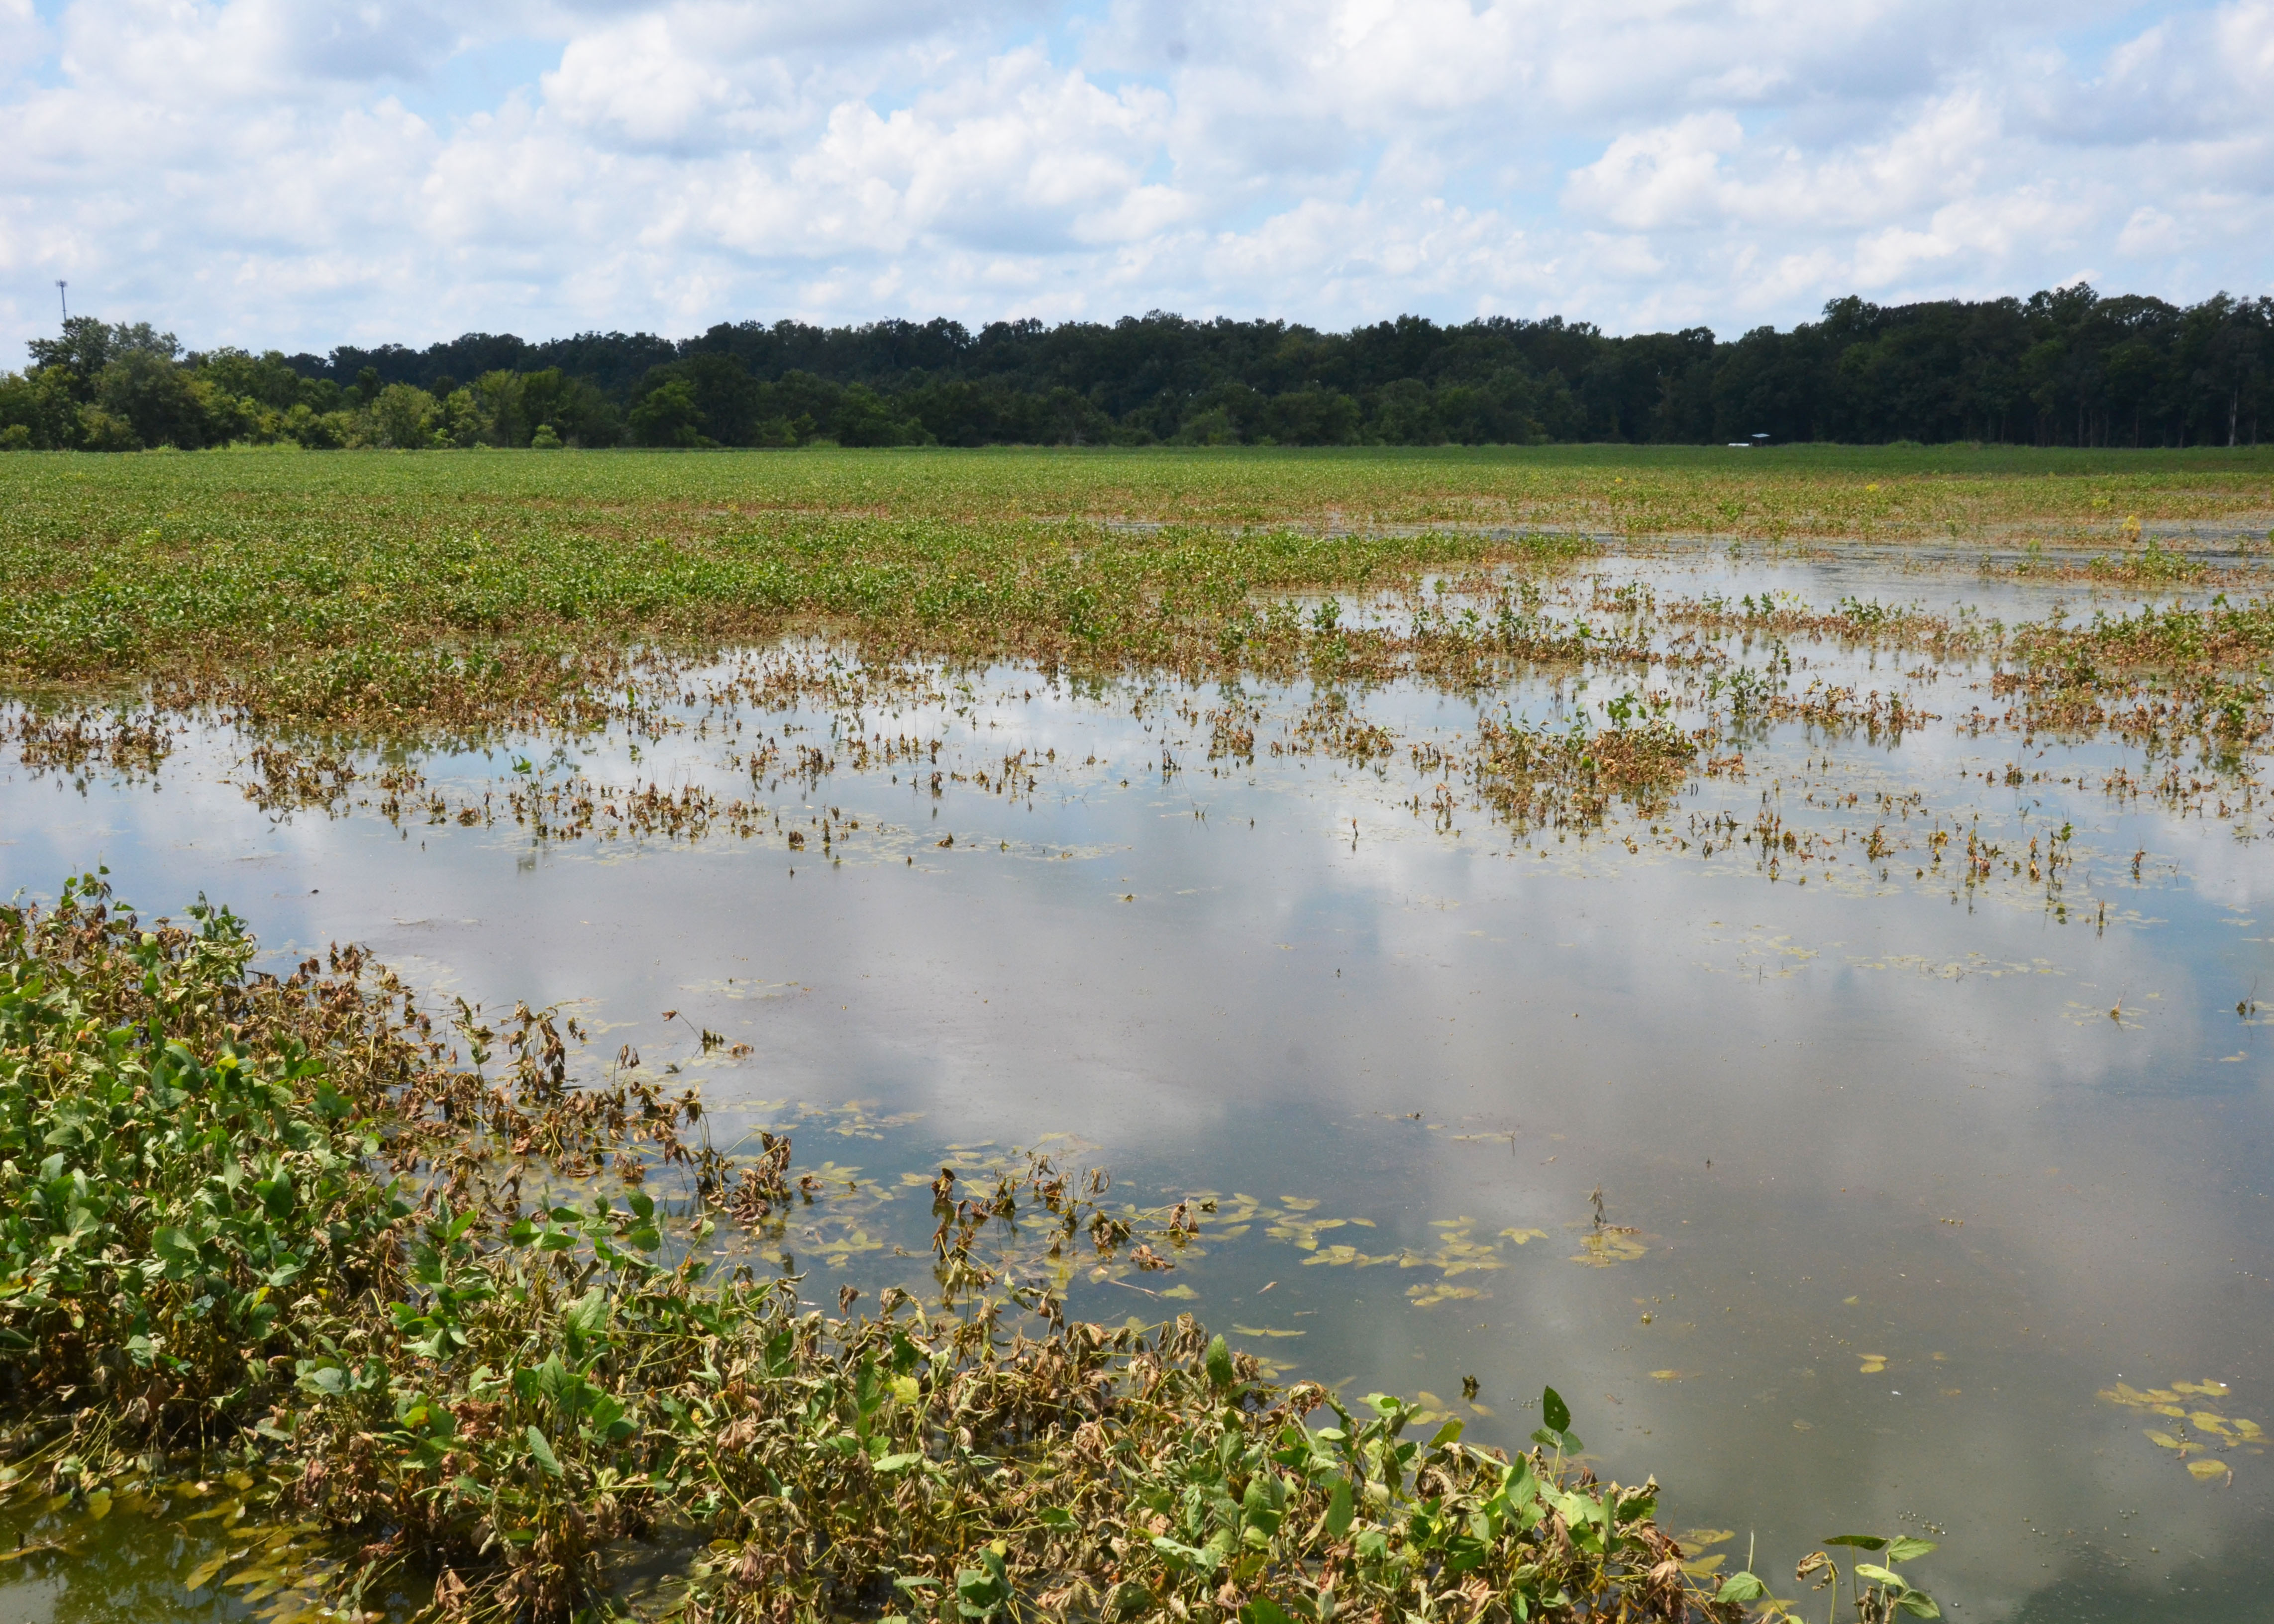 Flooding damage to agriculture now estimated at $277 million